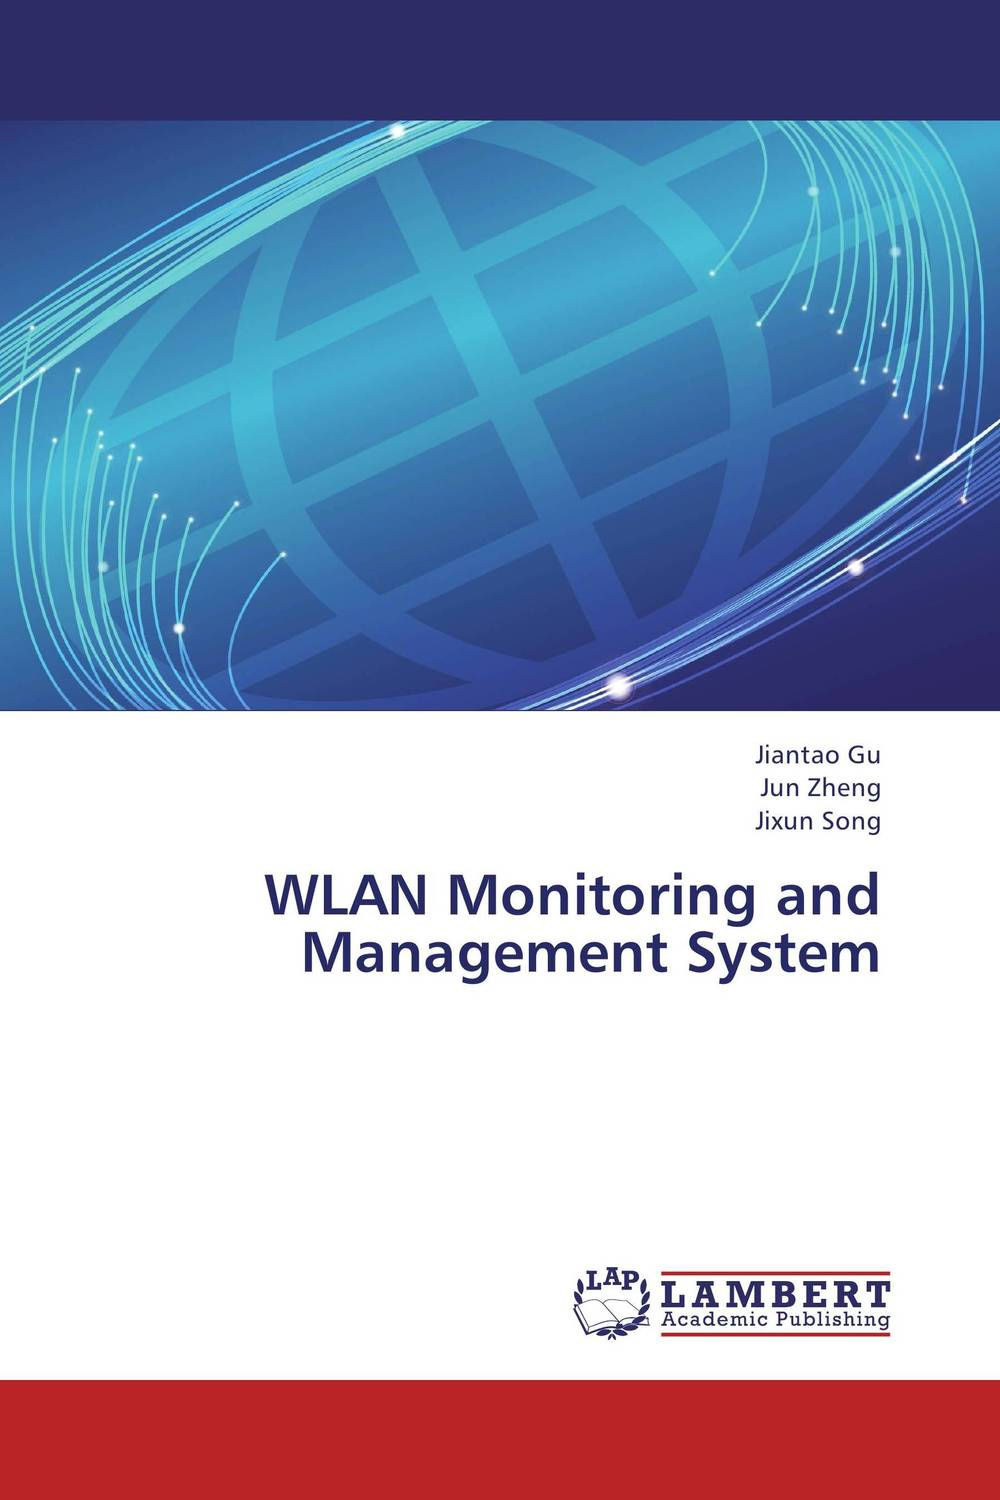 WLAN Monitoring and Management System design and implement network management system